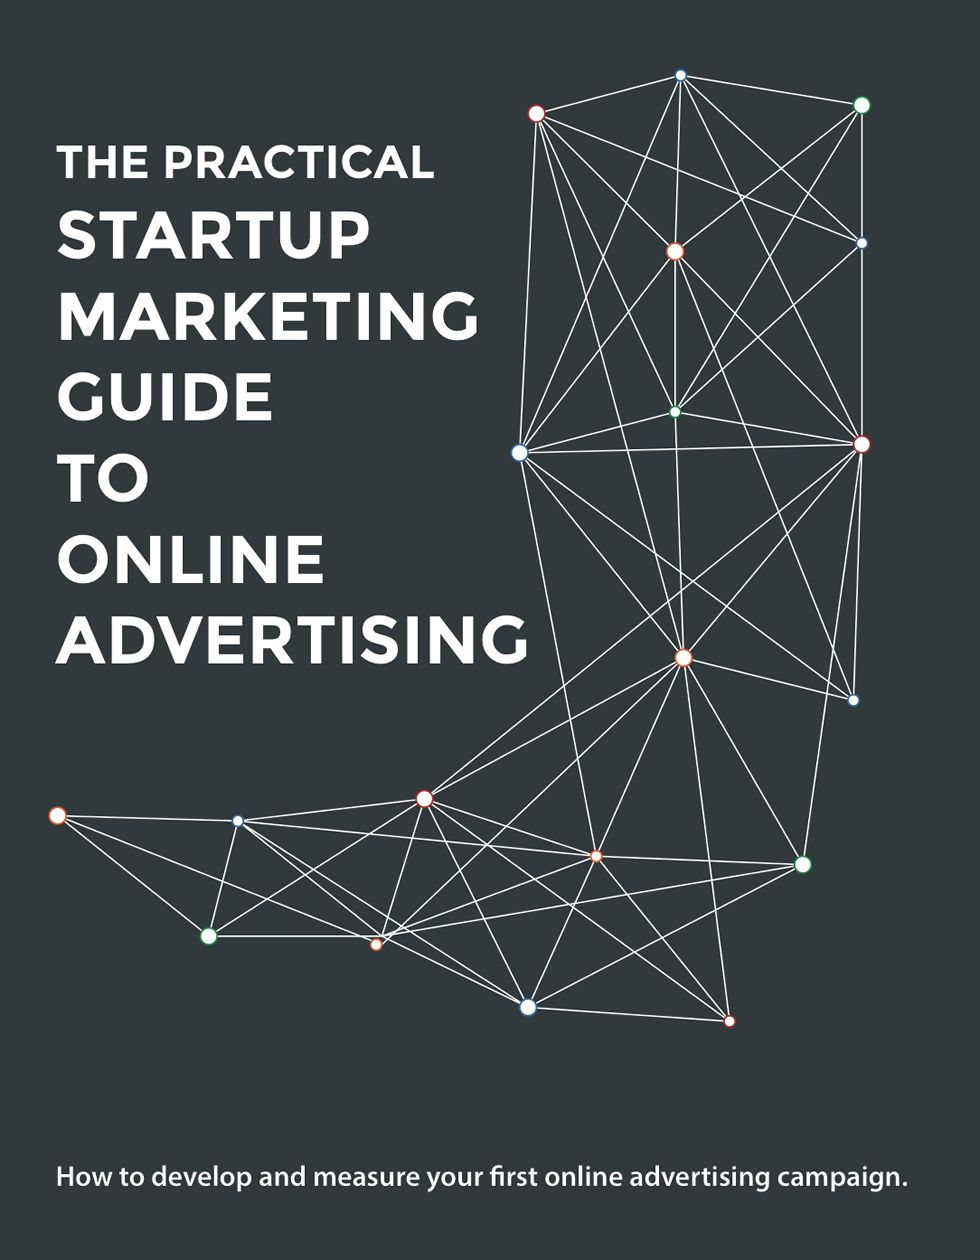 The Practical Startup Marketing Guide To Online Advertising